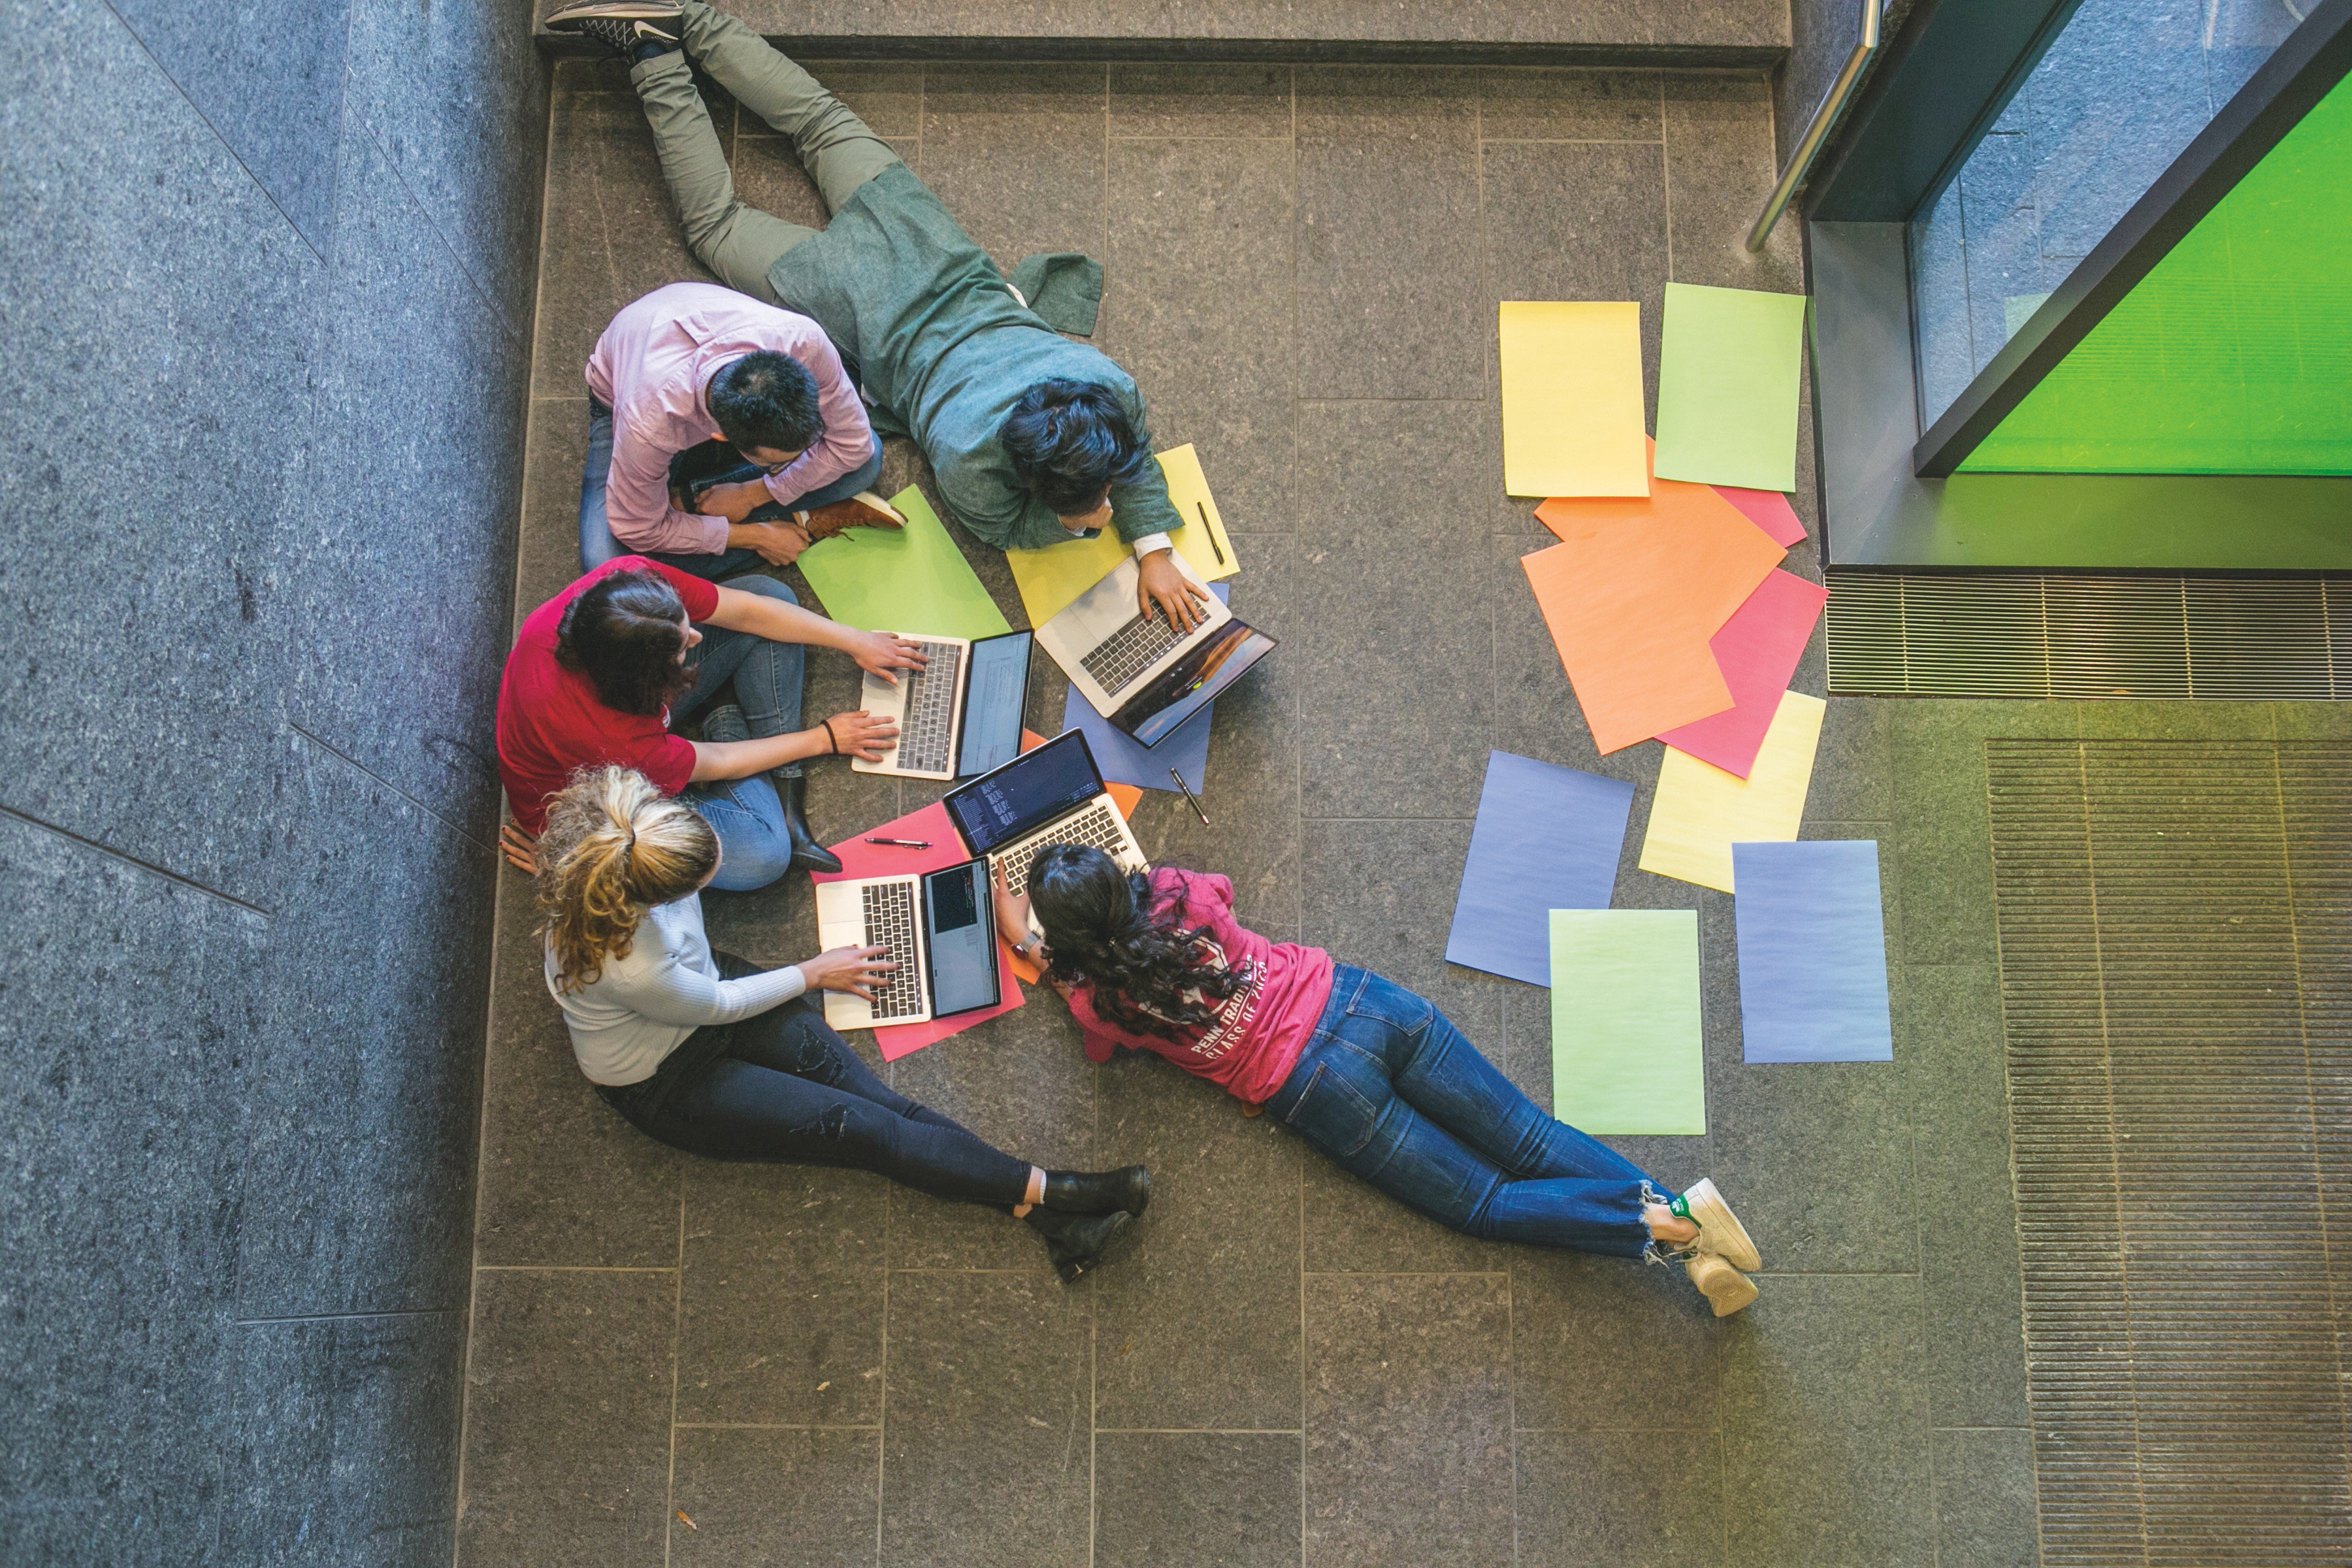 Students sit on the floor in lobby of Skirkanich Hall, working with laptops and construction paper.